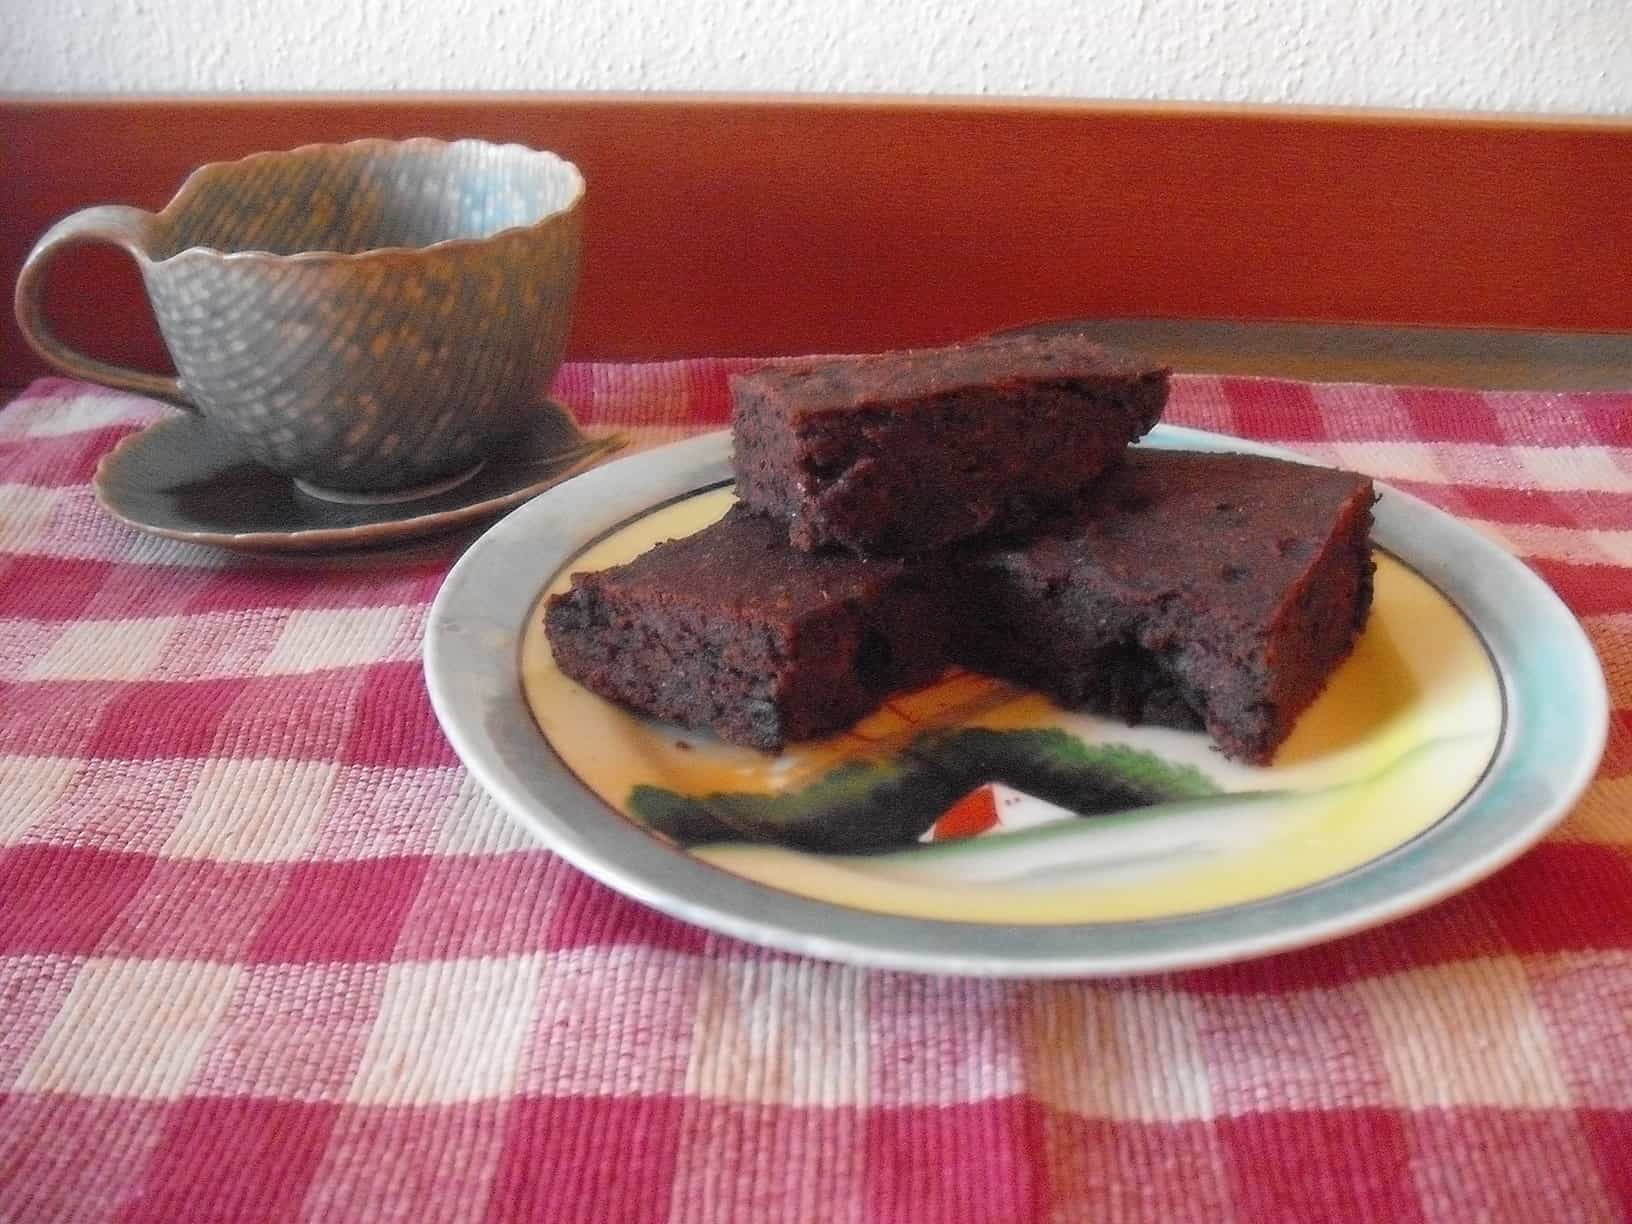 Vegan, Gluten-Free, Low-Sugar Brownies: And you really expect me to be your valentine?